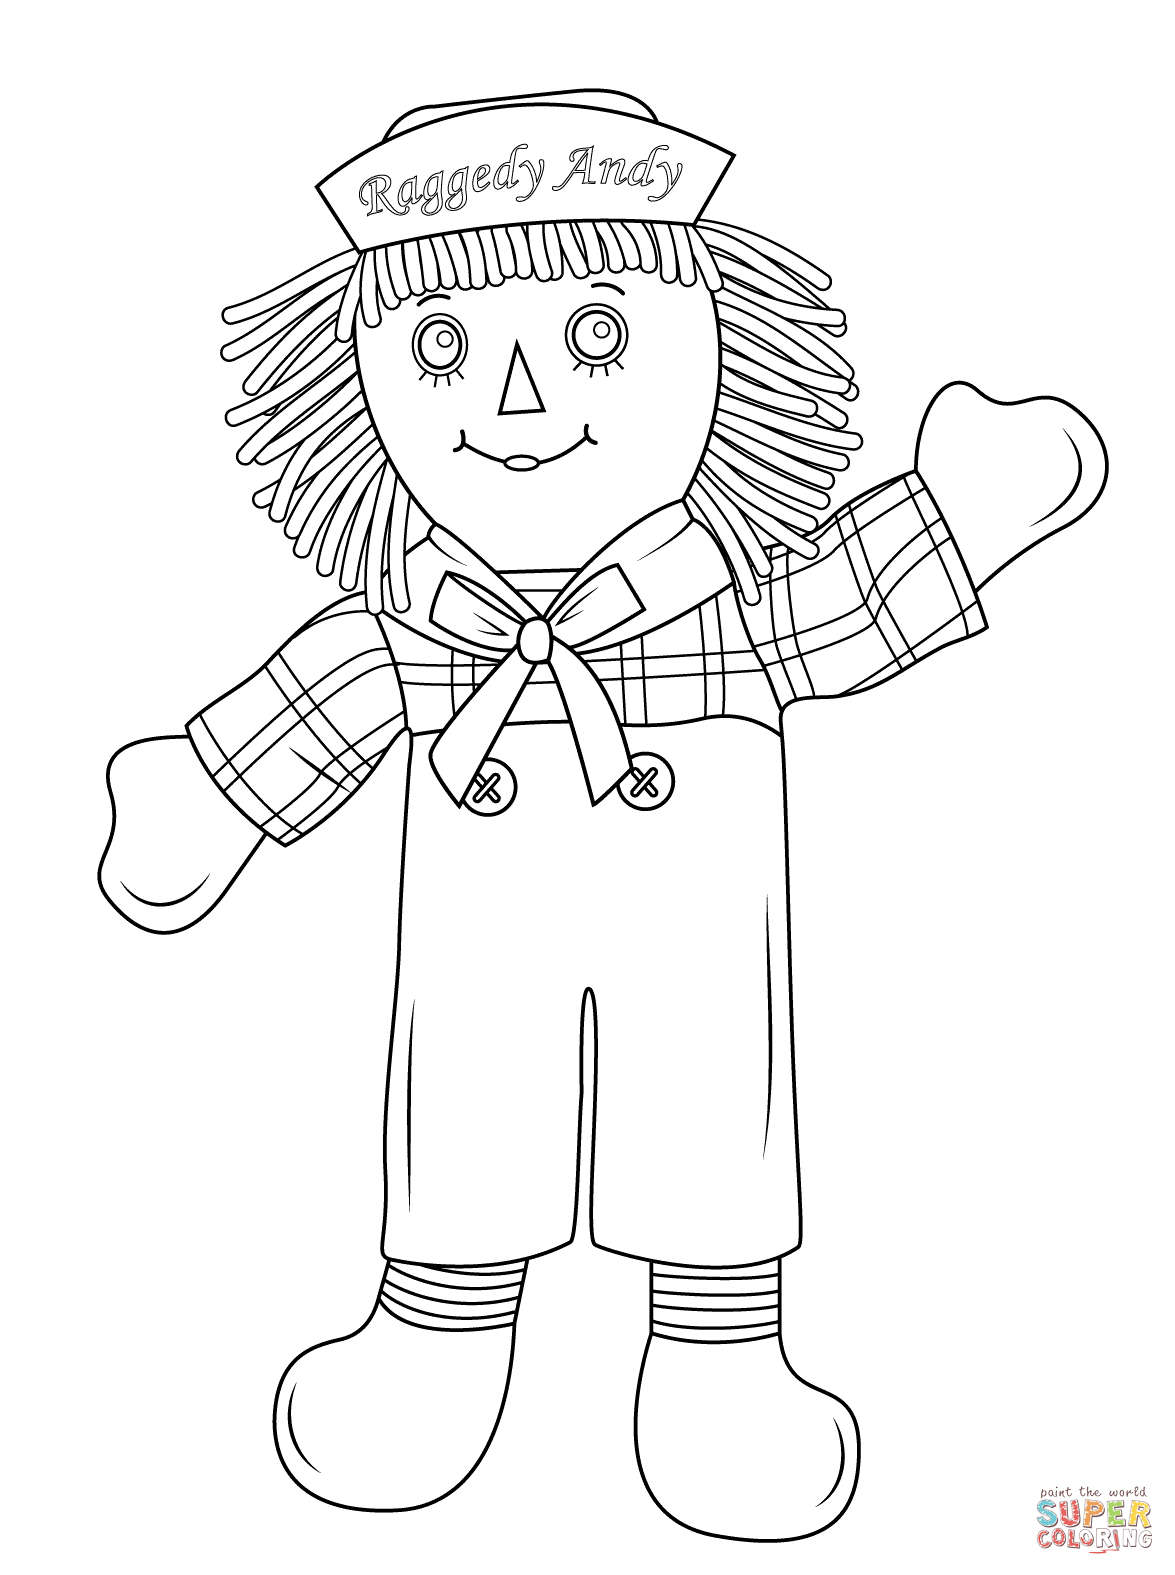 cabbage patch doll coloring pages - photo #41